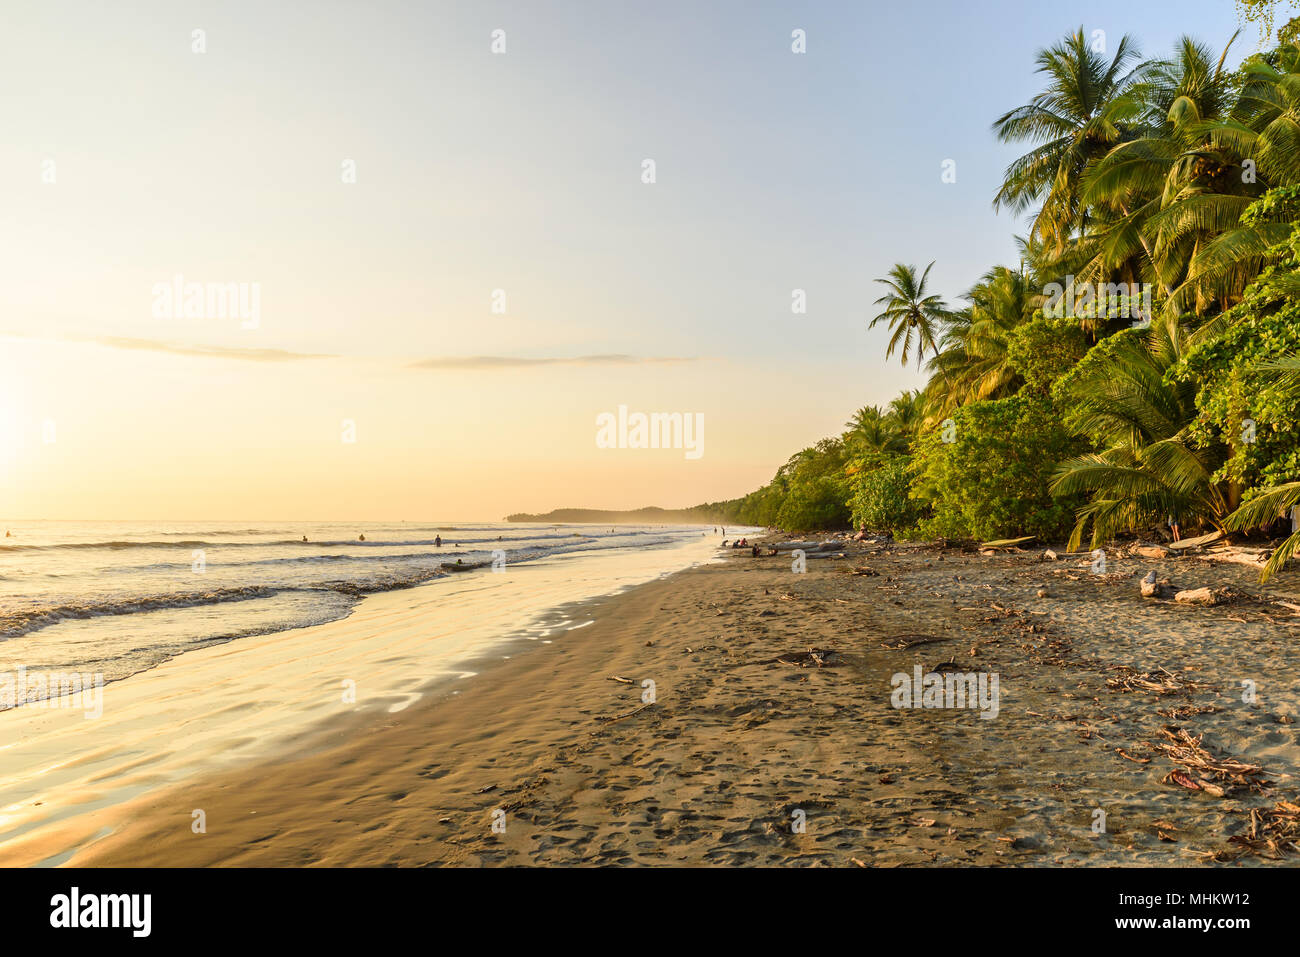 Sunset at paradise beach in Uvita, Costa Rica - beautiful beaches and tropical forest at pacific coast of Costa Rica - travel destination in central a - Stock Image